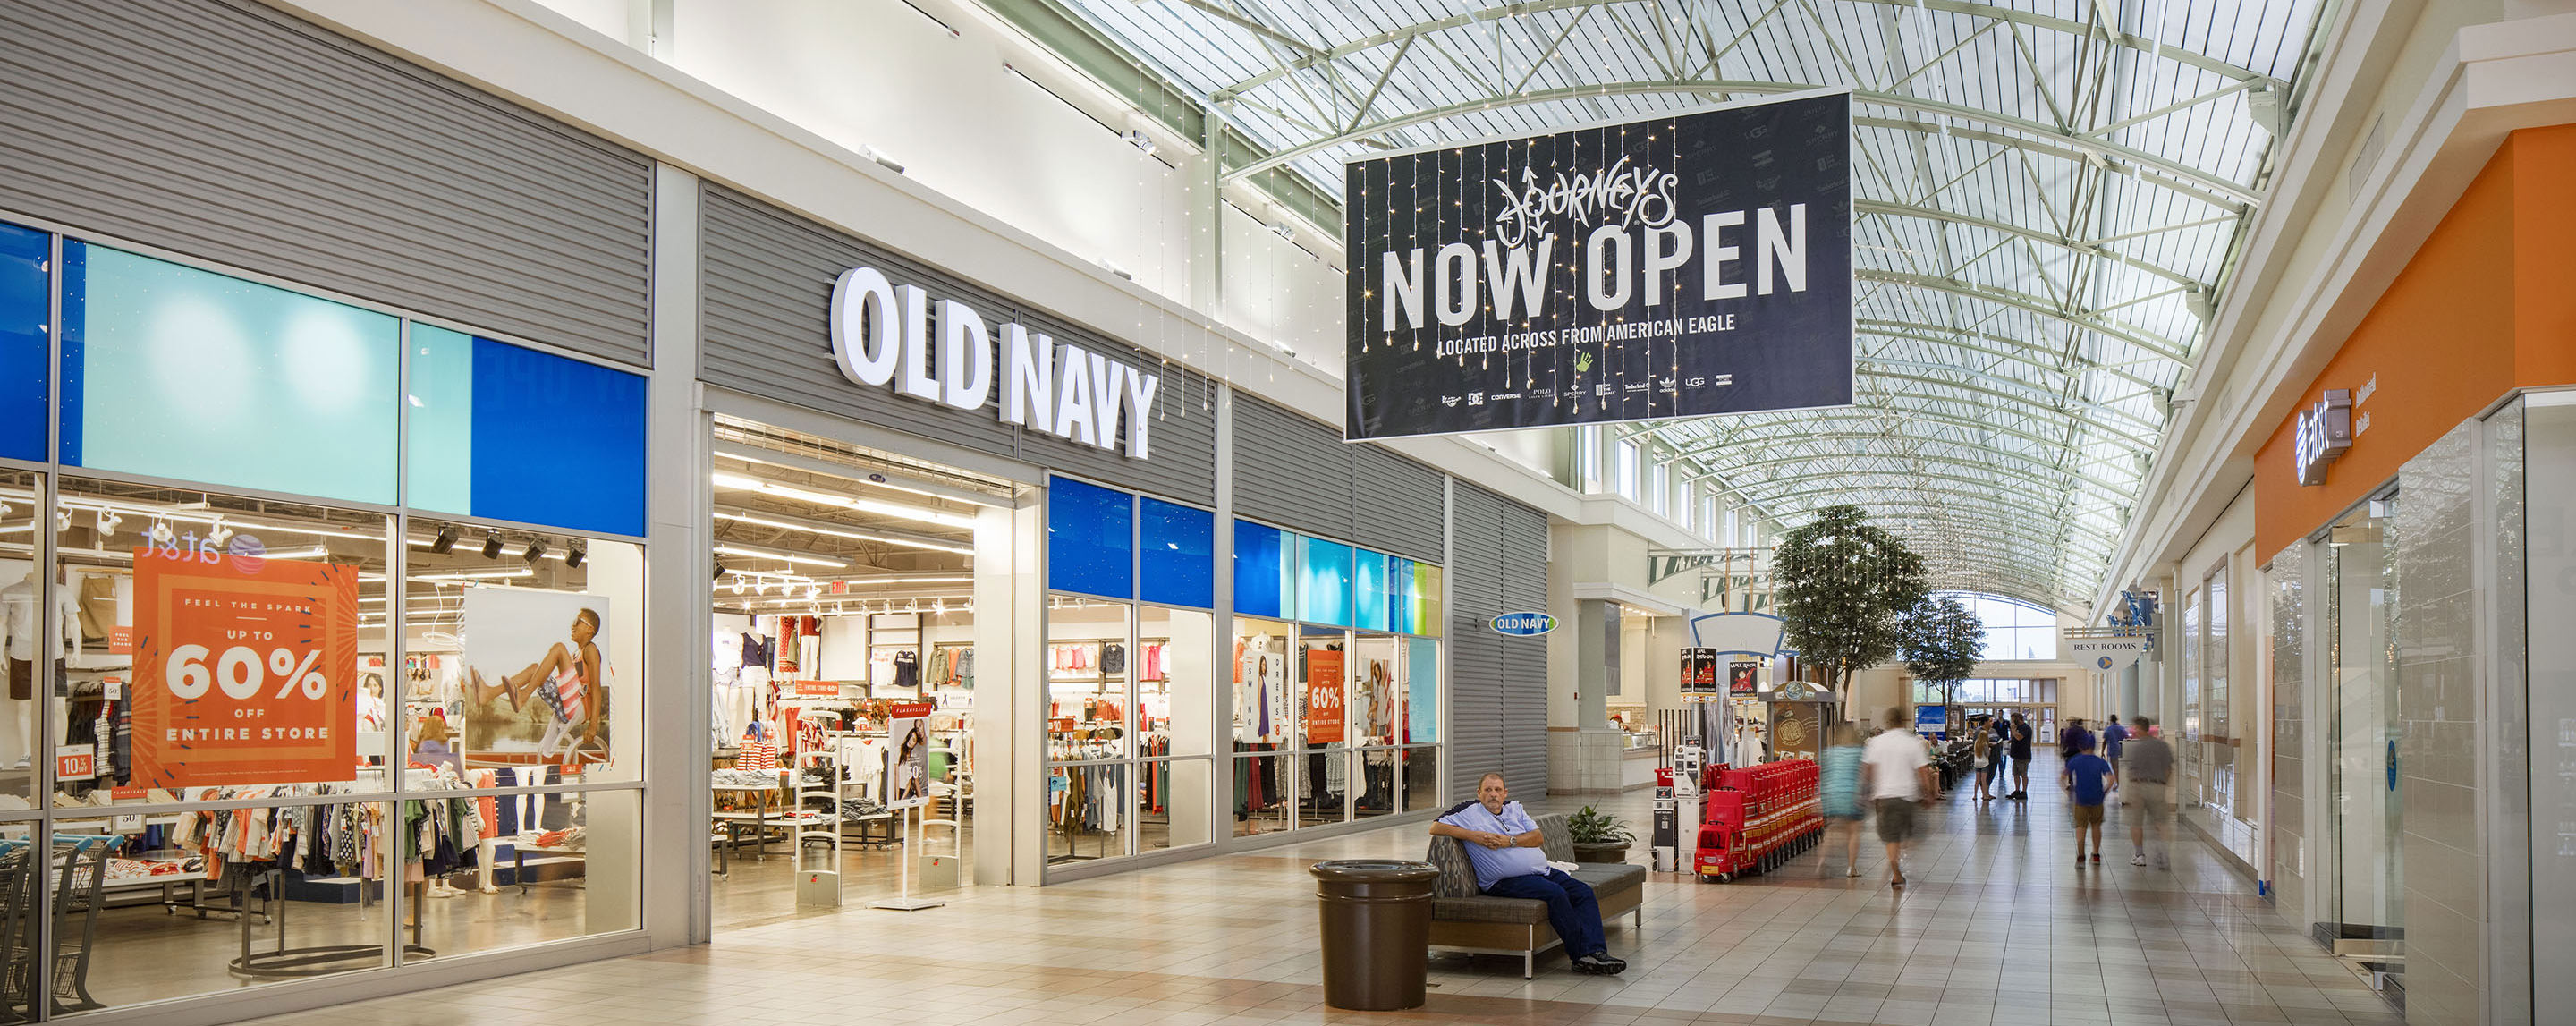 """A black """"Now Open"""" sign for Journeys hangs above a seated man and outside of an Old Navy."""